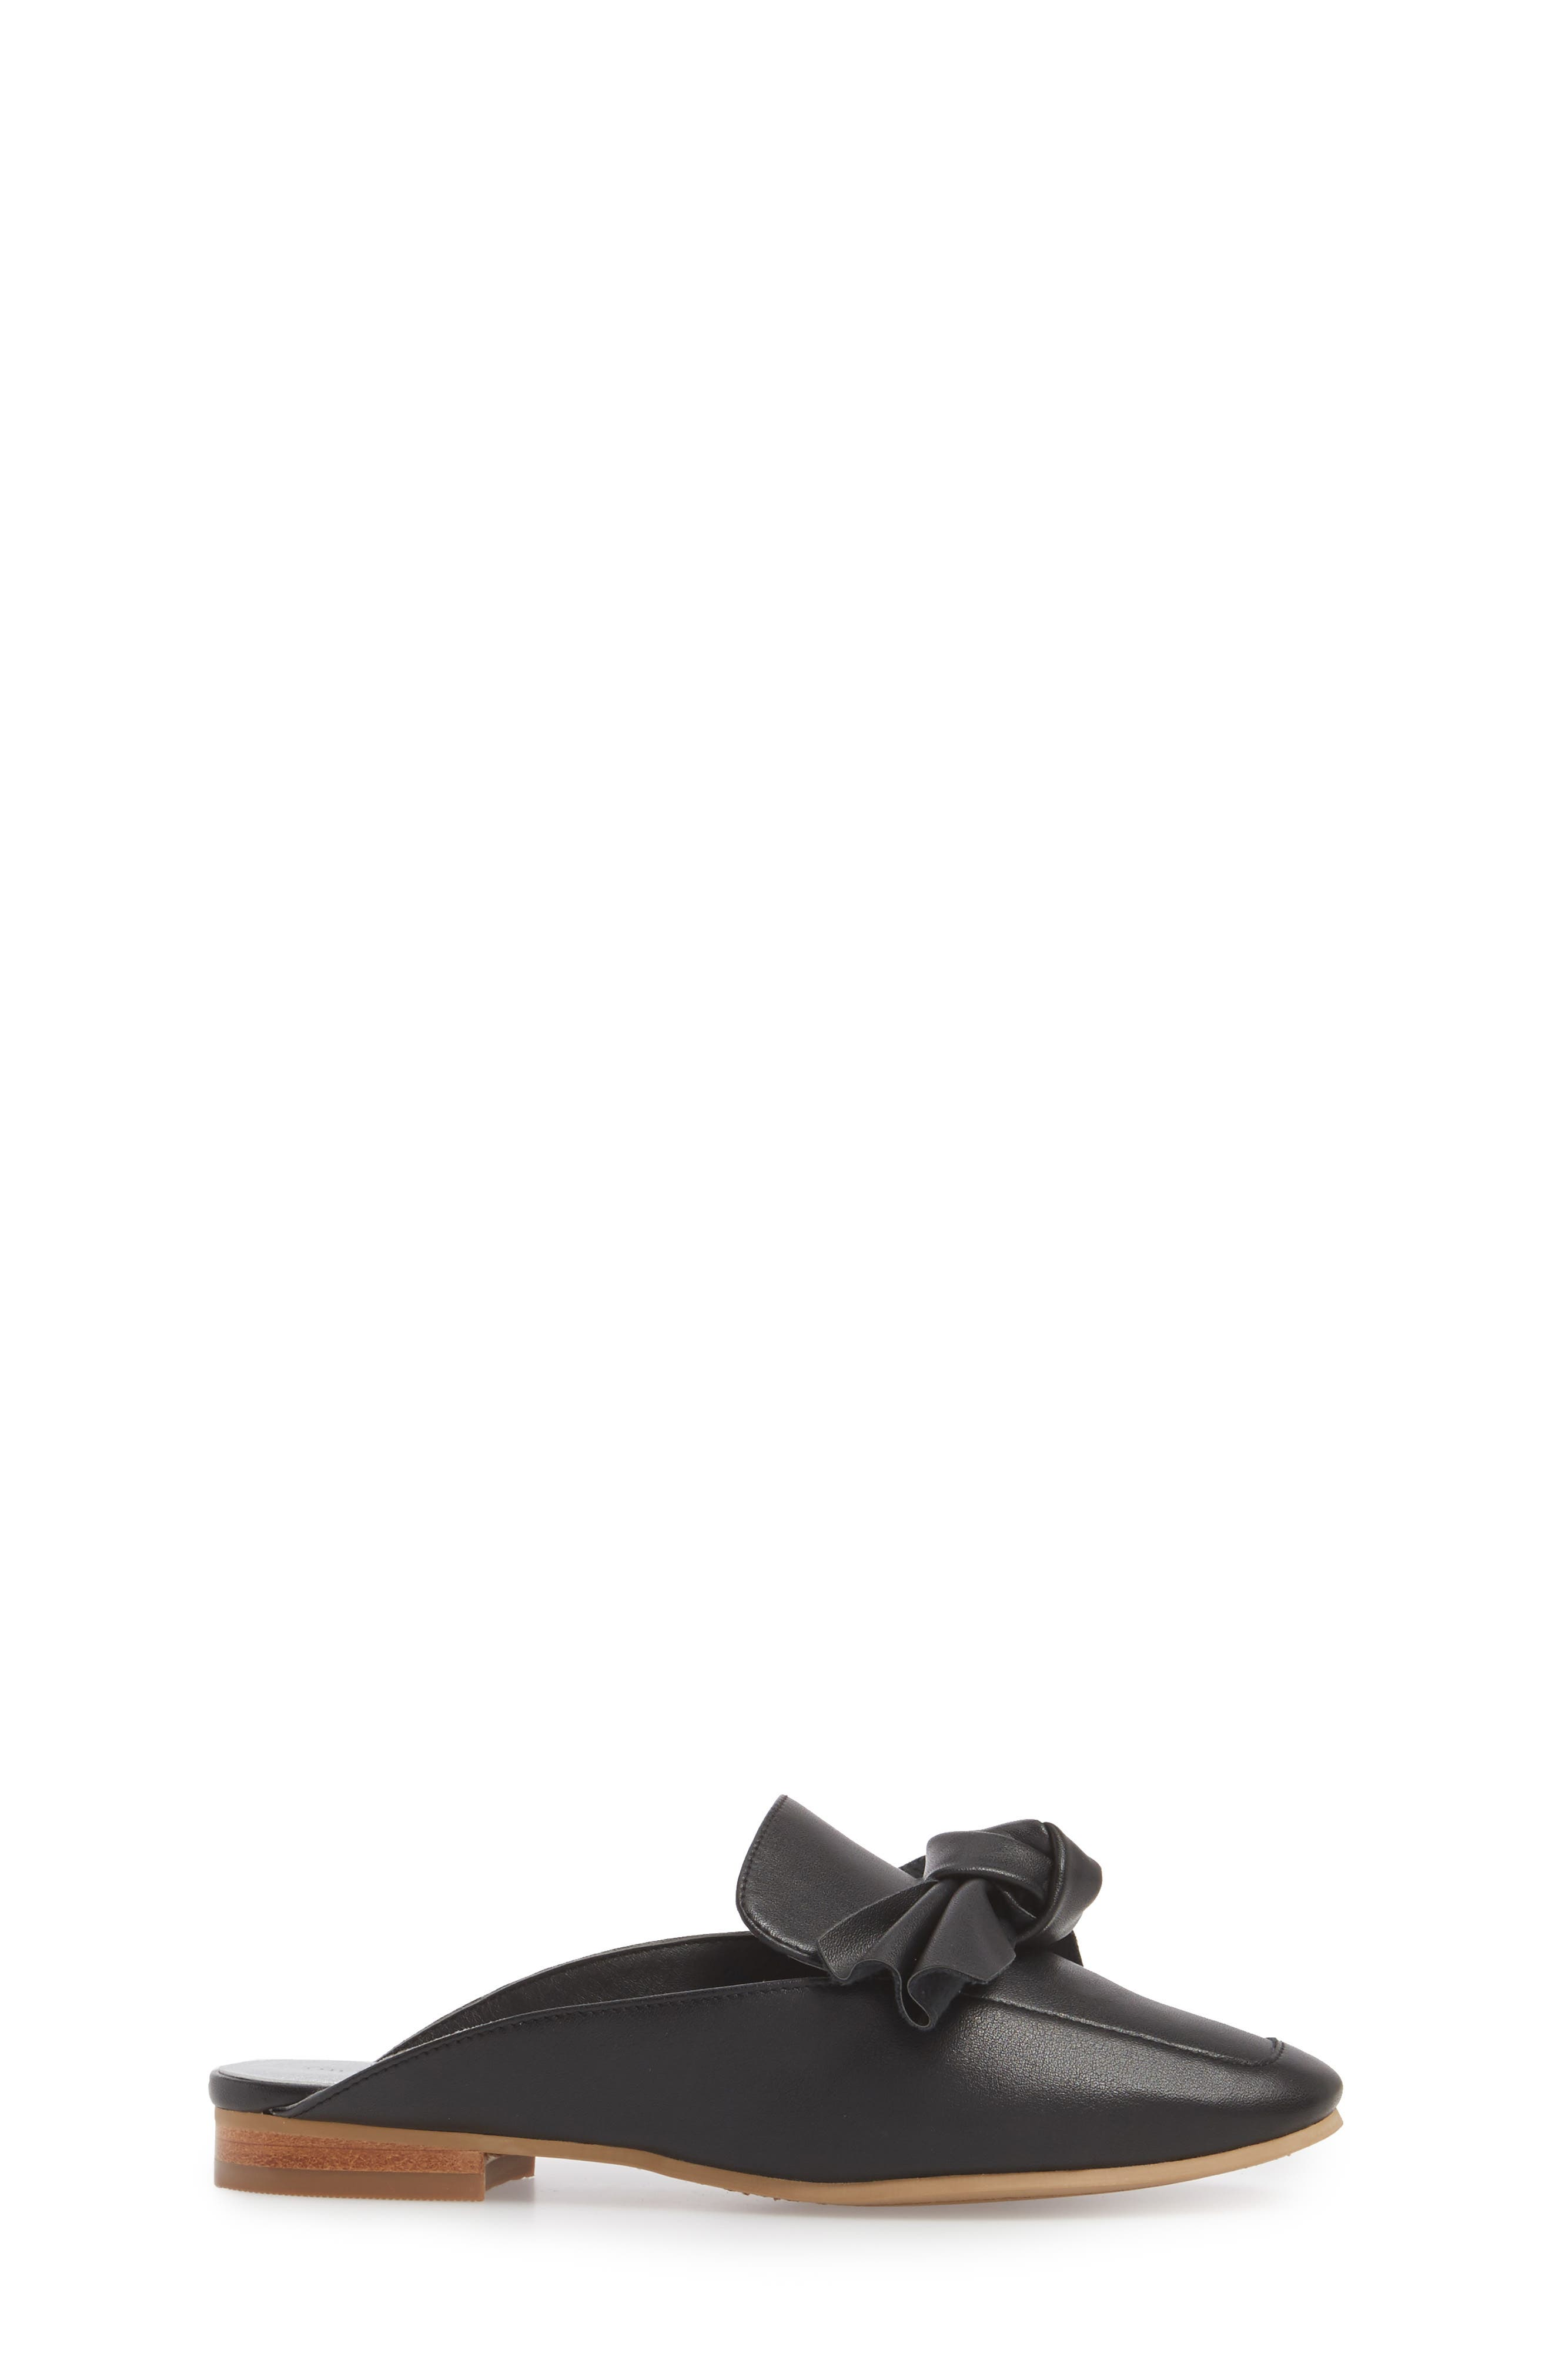 Gina Knotted Loafer Mule,                             Alternate thumbnail 3, color,                             001